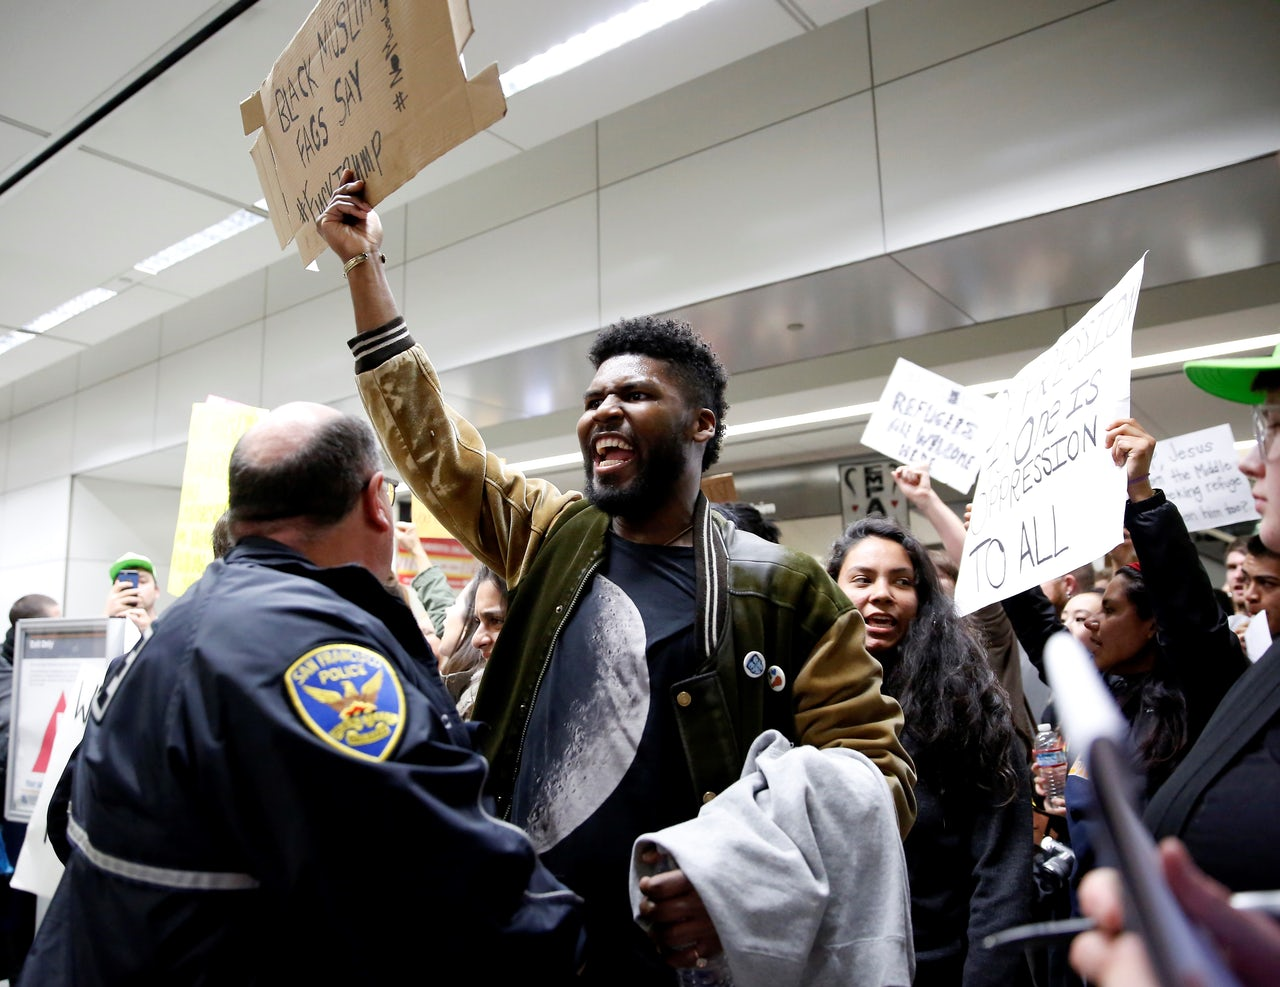 Activists stage a rally against President Donald Trump's 90-days ban of entry on 7 Muslim-majority countries at the San Francisco International Airport.